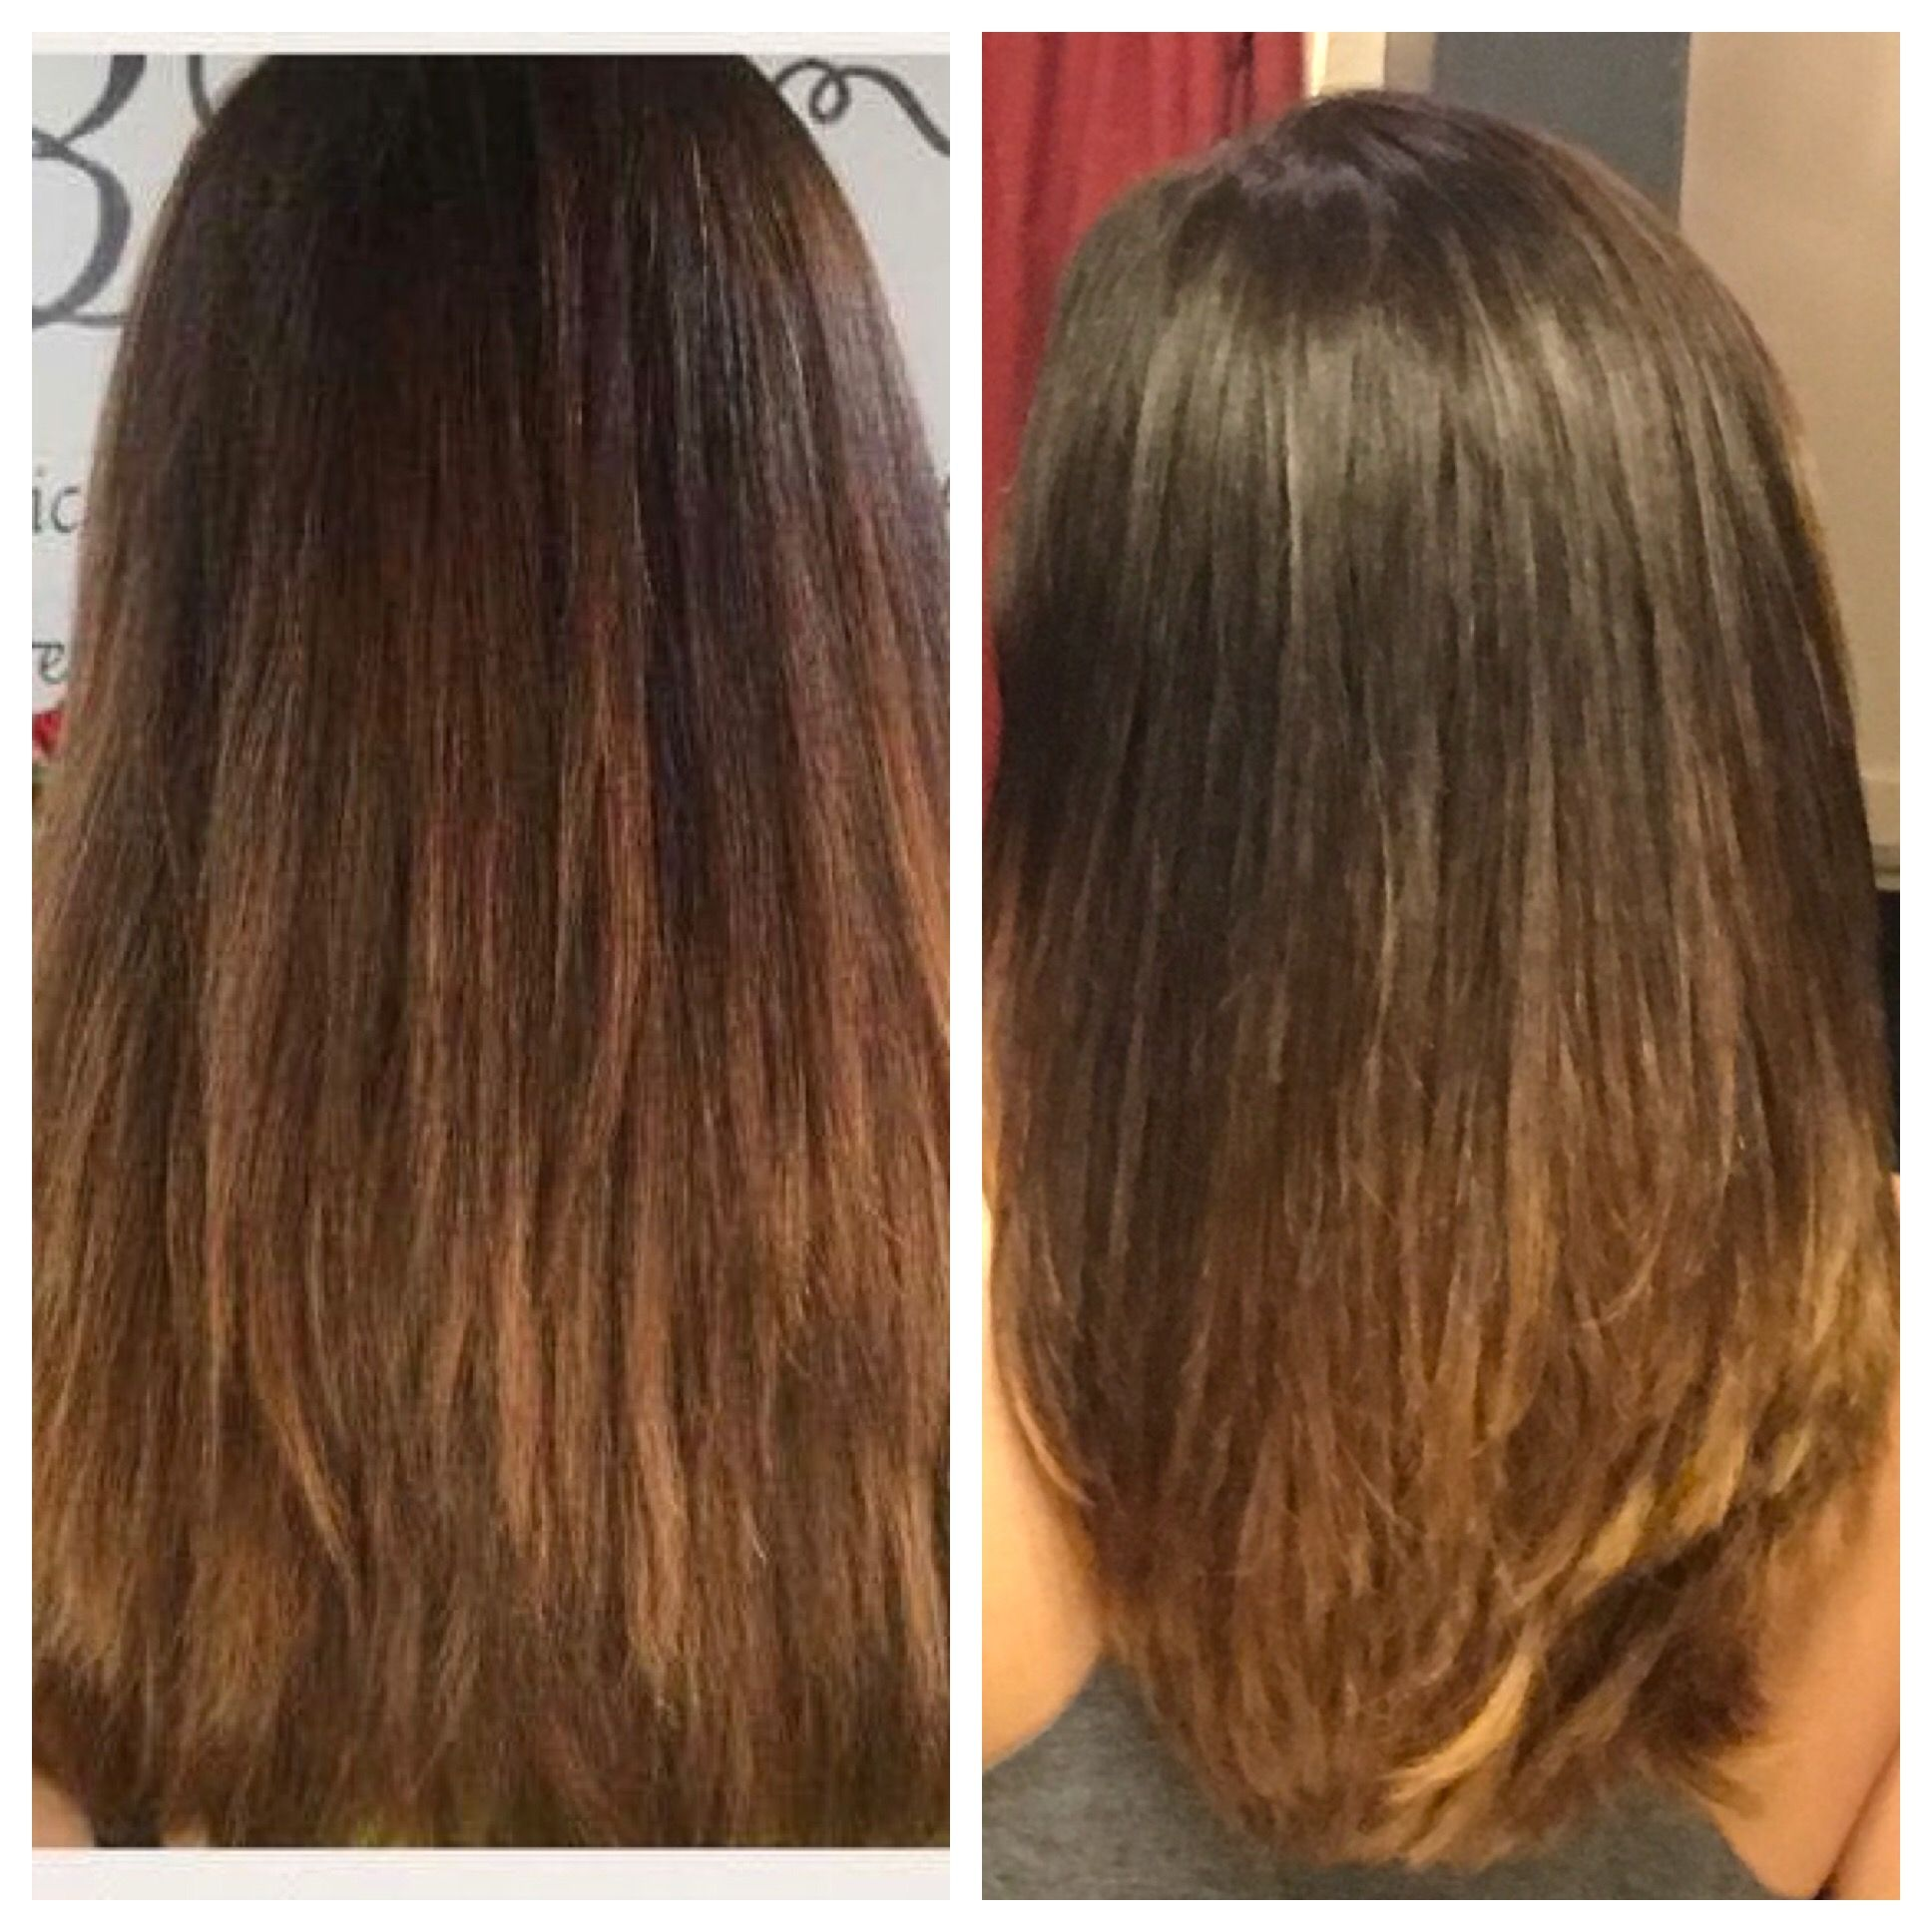 62467e00 This is my hair after the first wash with Monat and after the fourth wash!